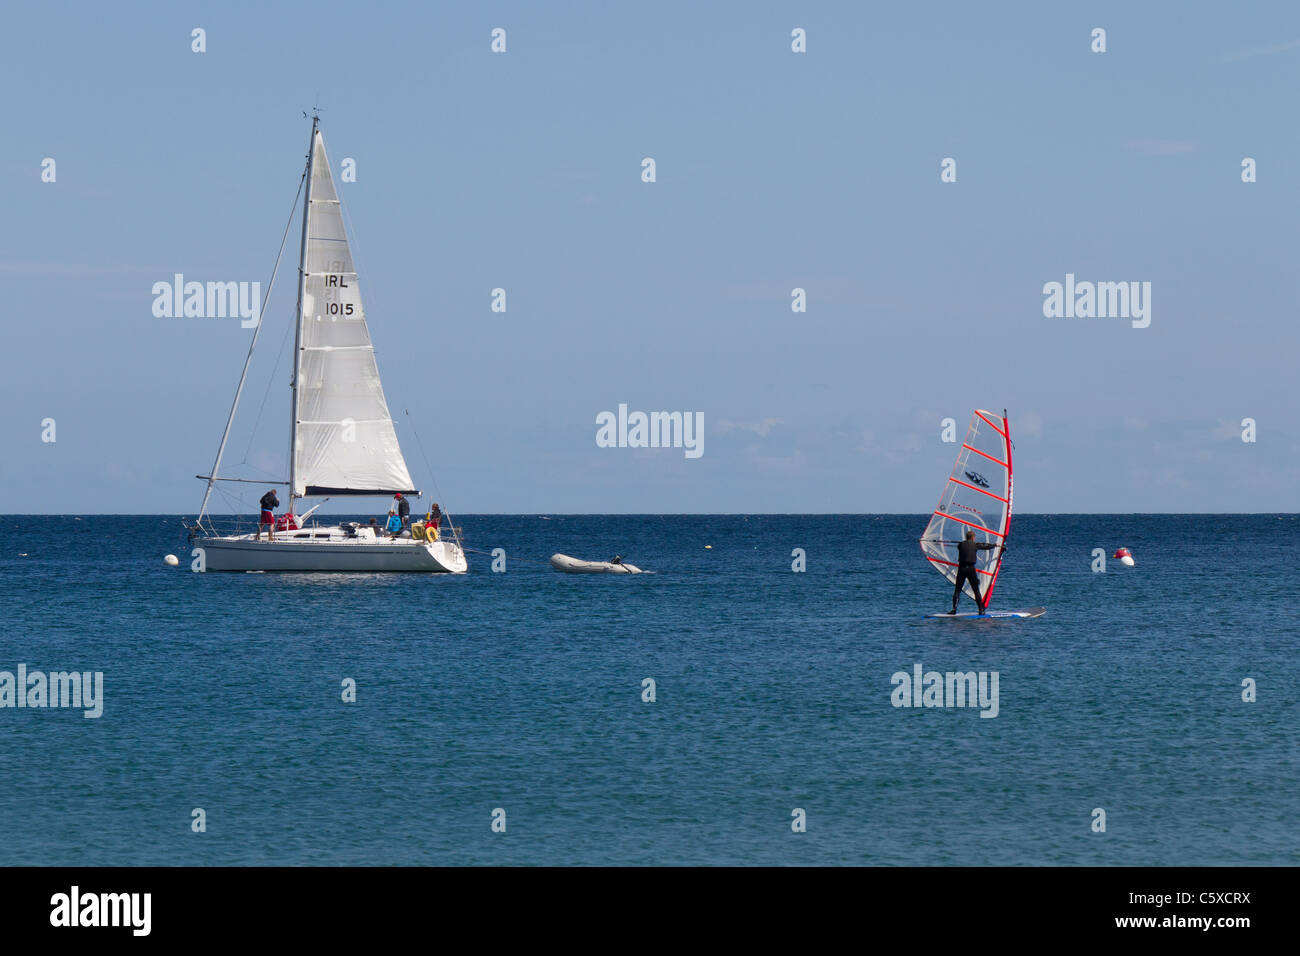 Sailing and wind surfing off of Coverack Cove, Coverack, Cornwall - Stock Image